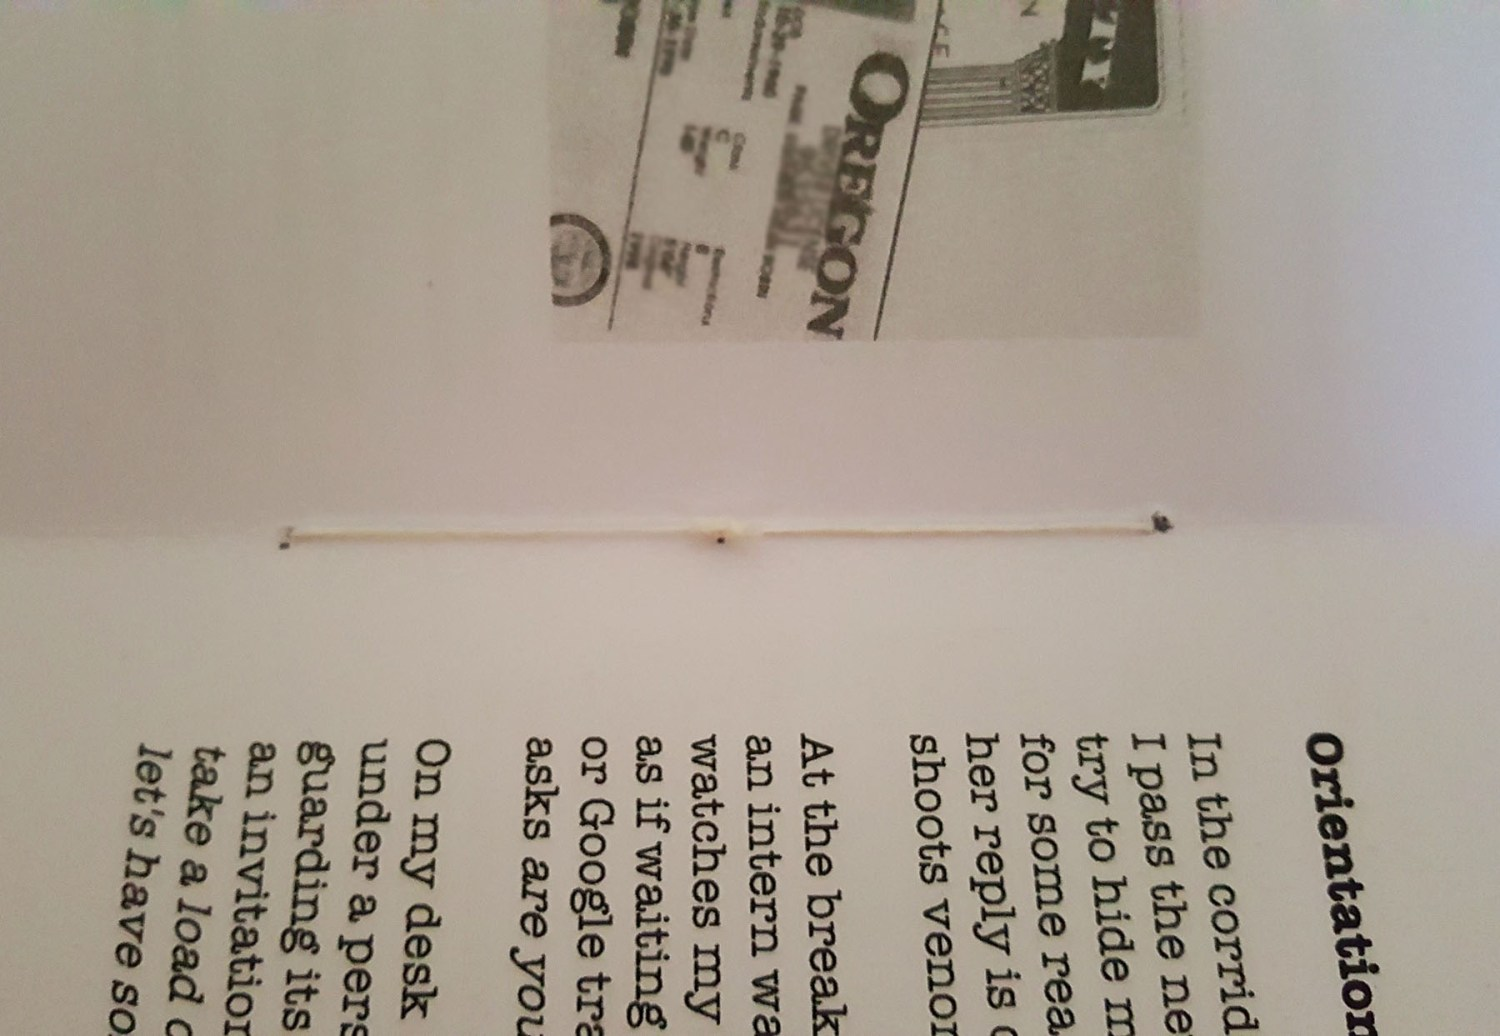 inside - binding the pamphlet